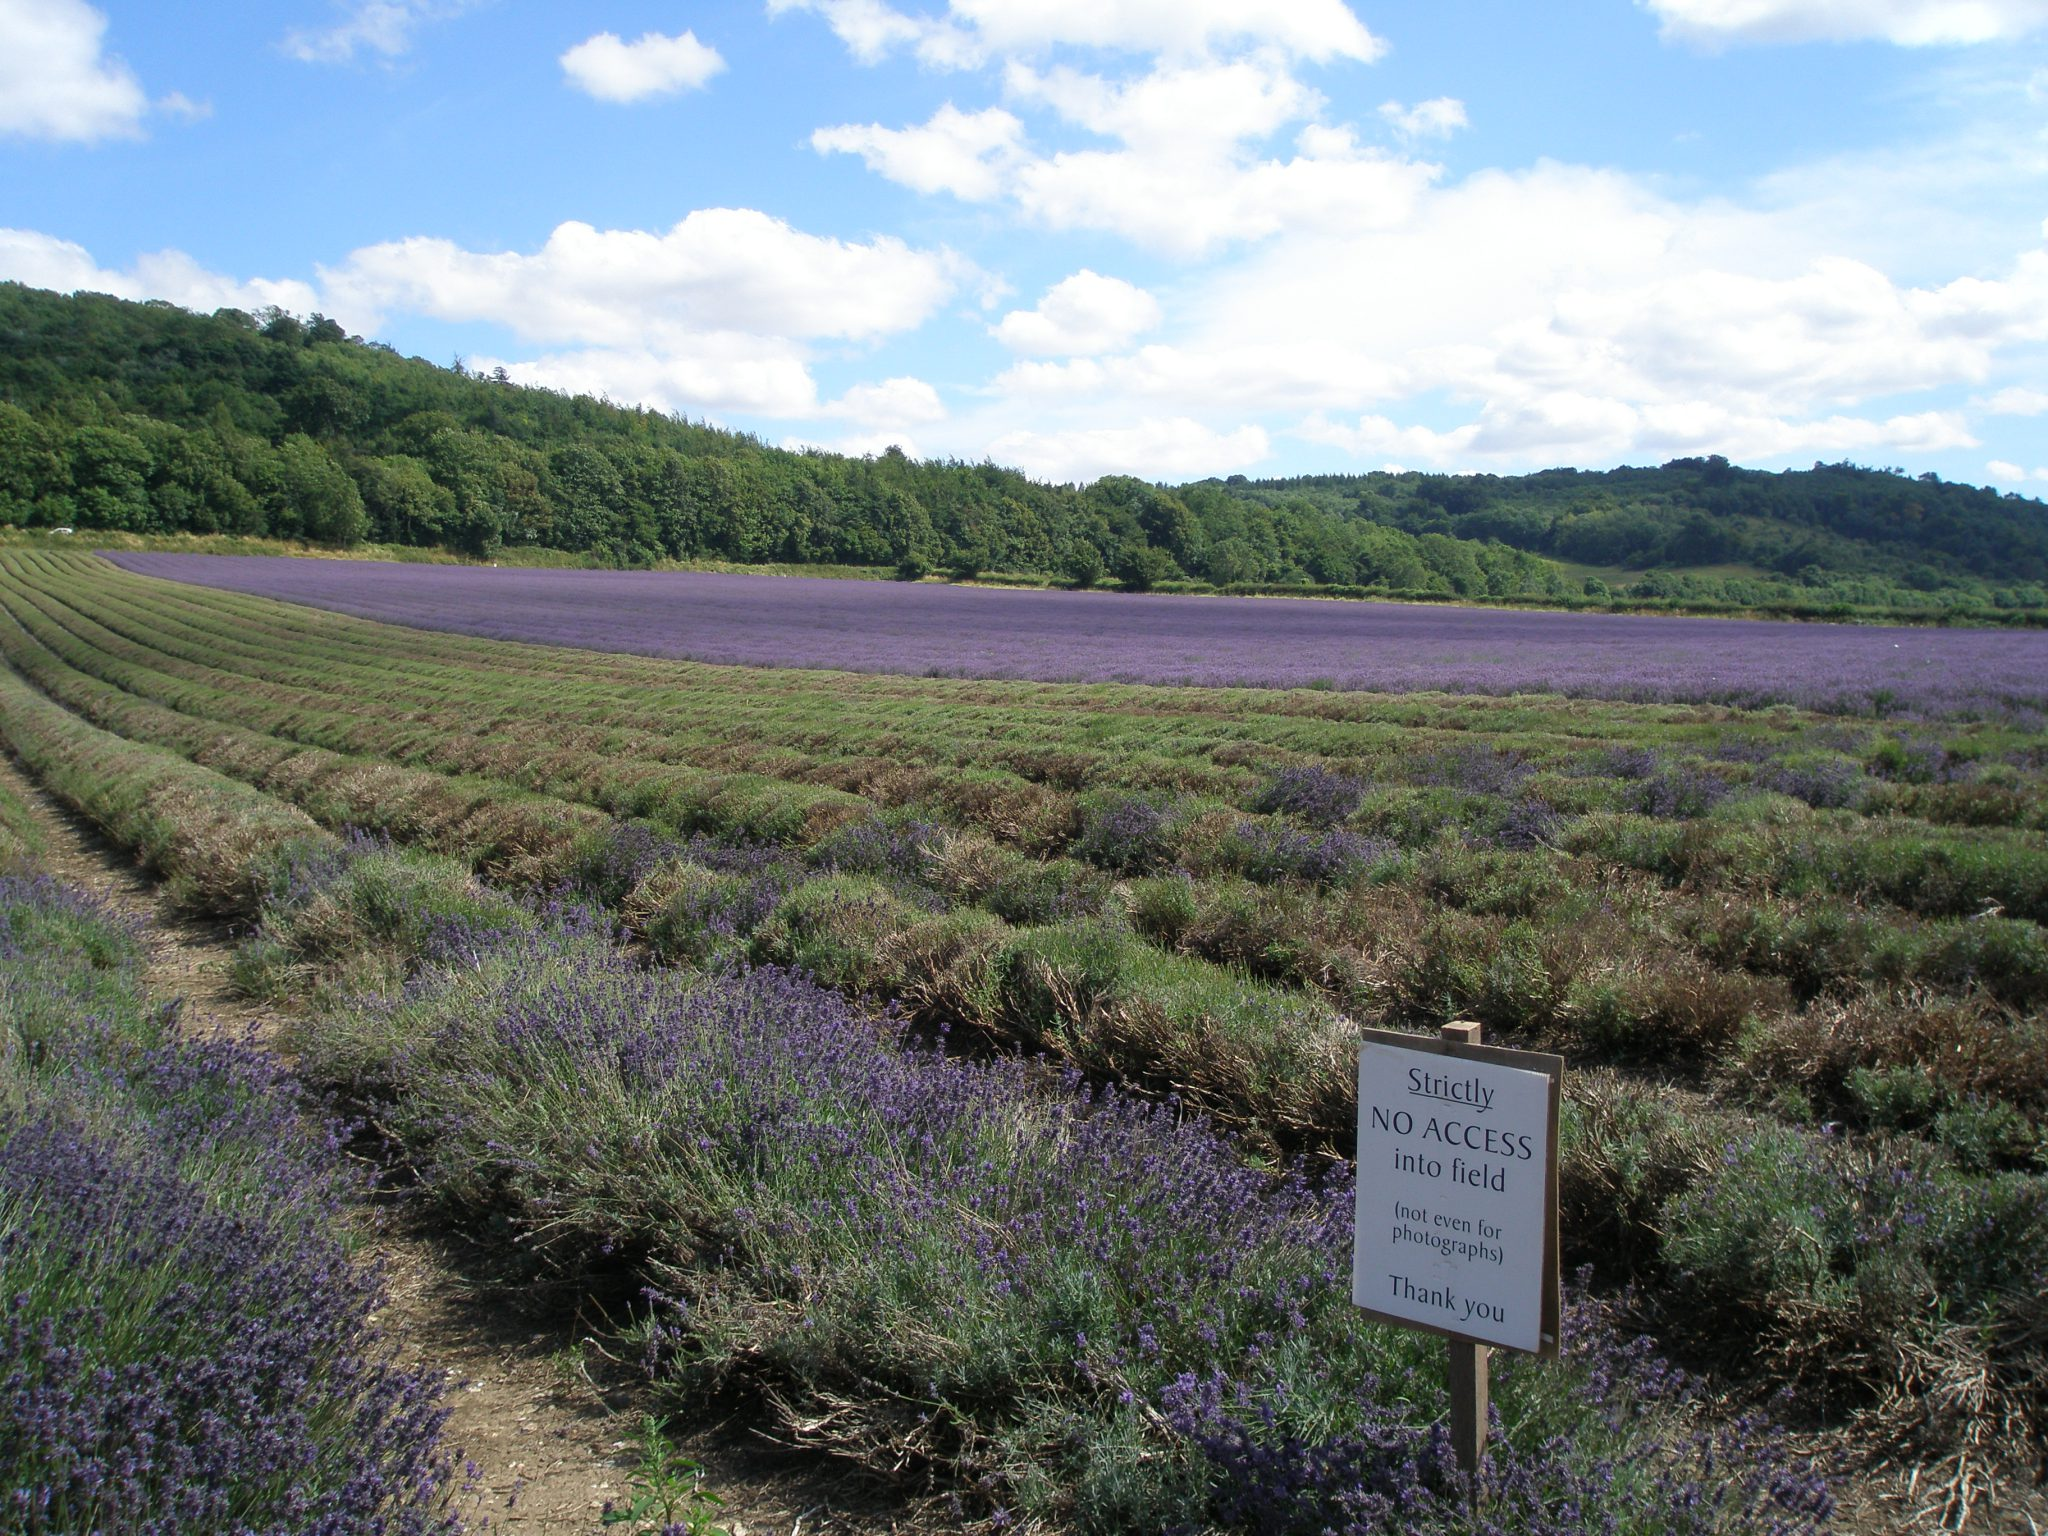 I obeyed, and did not advance into Castle Farm's lavender fields.